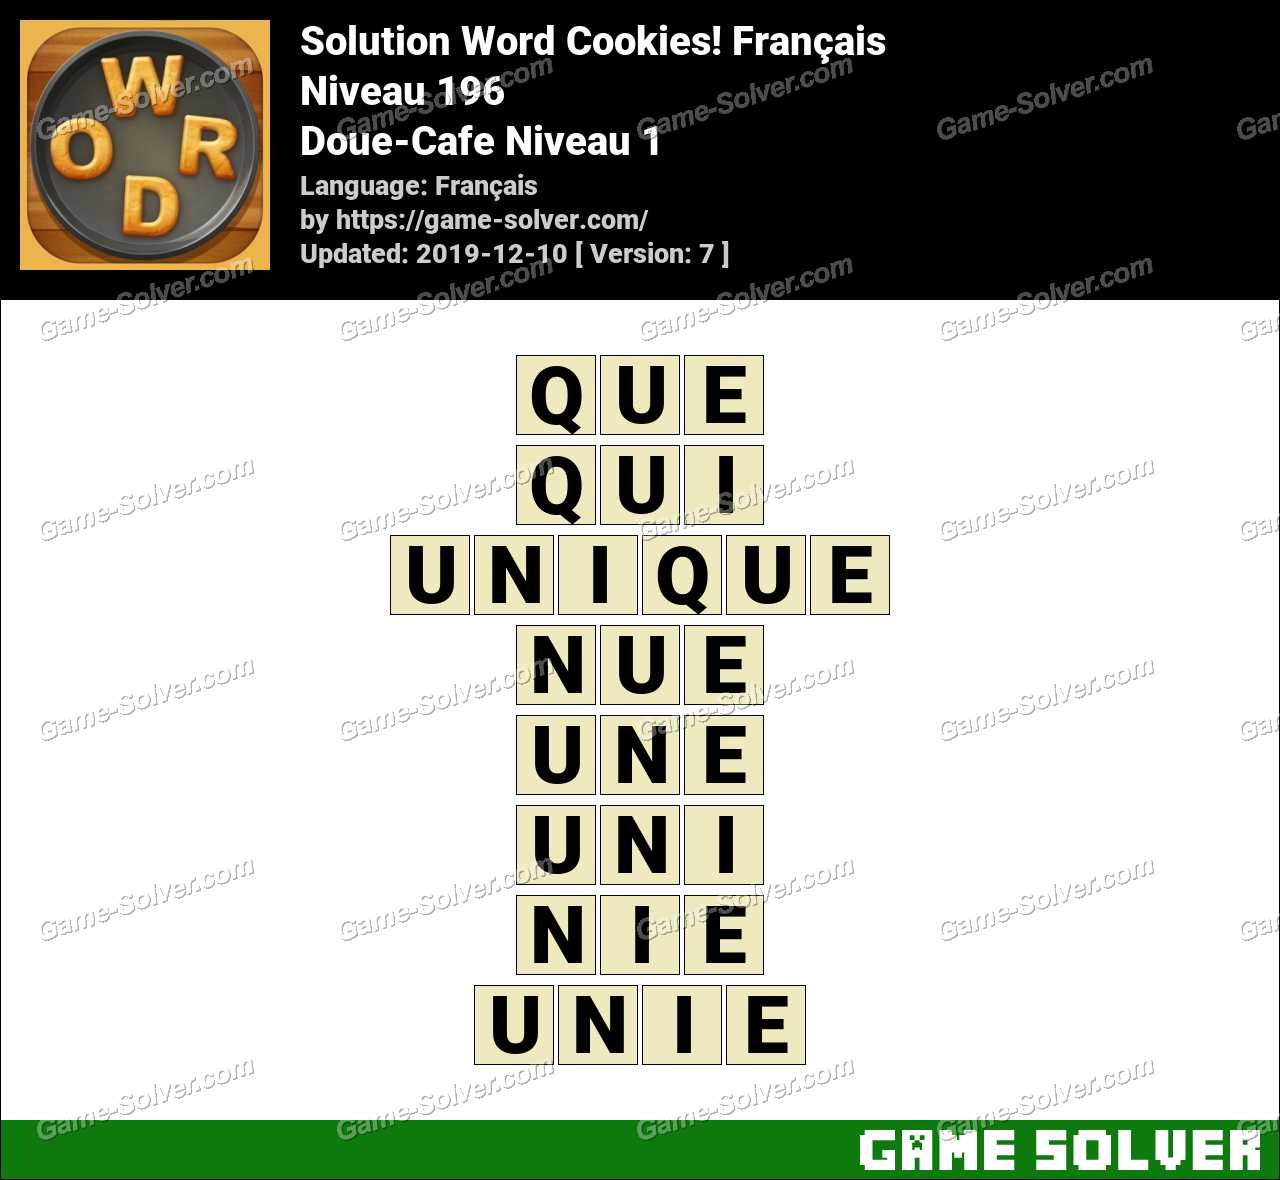 Solution Word Cookies Doue-Cafe Niveau 1